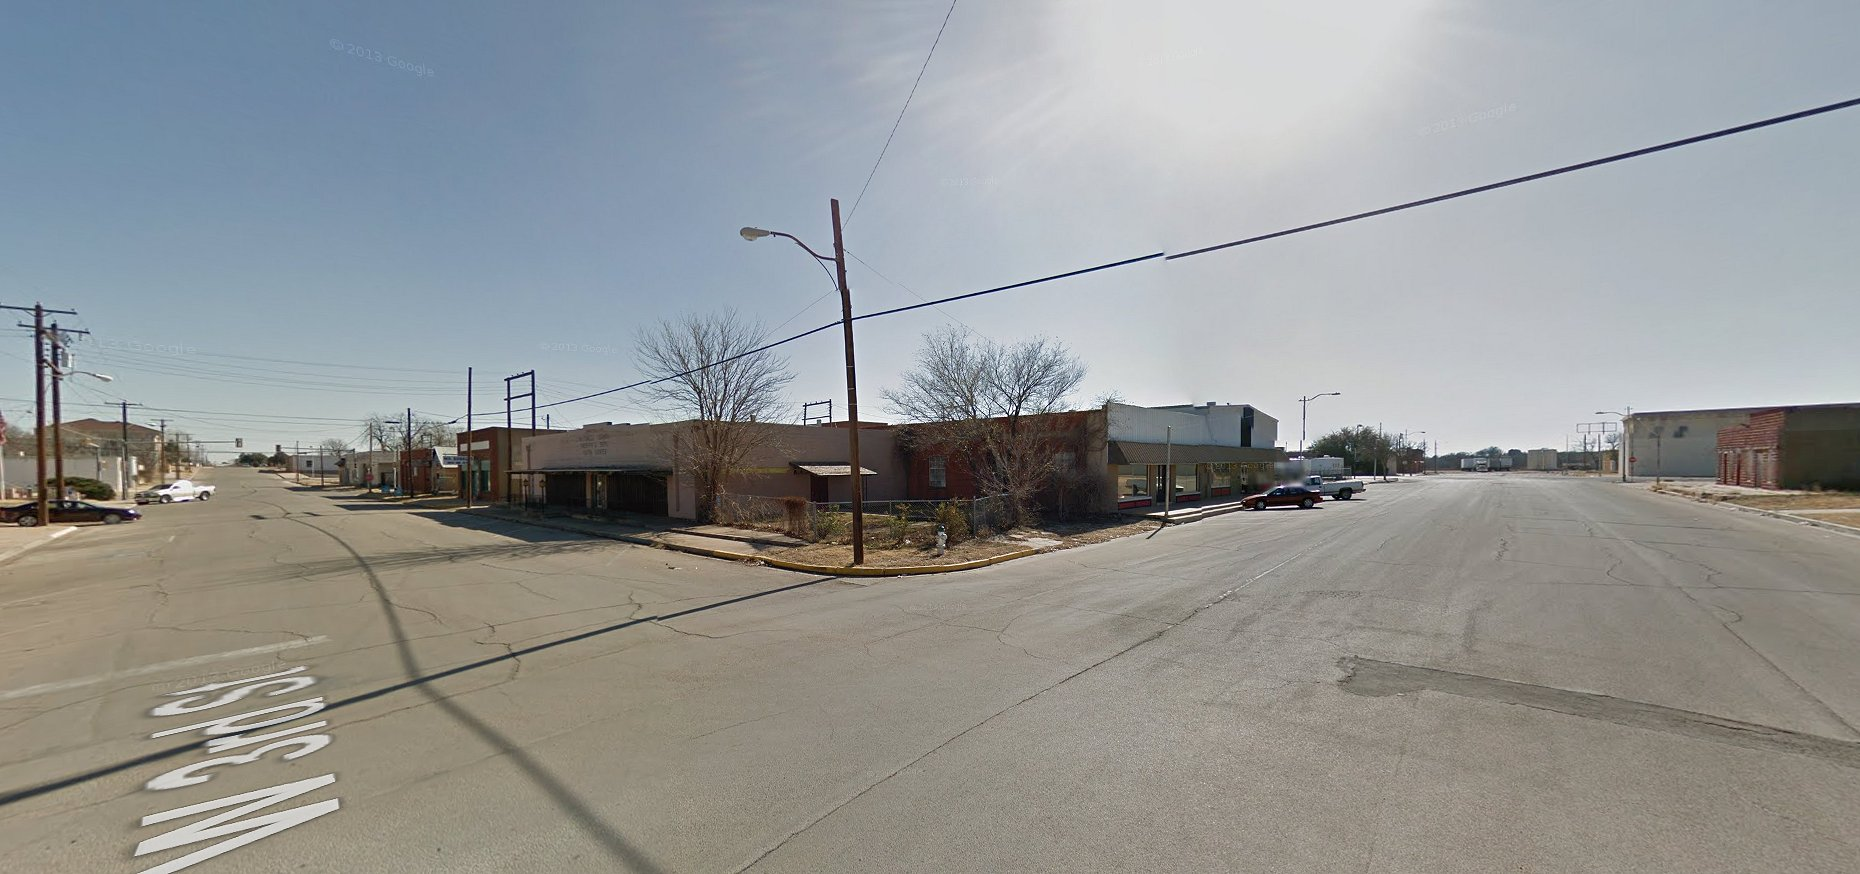 Texas Historic Towns, old buildings in Texas, turning a dying town around, re-purposing old building, repurposing empty buildings. converting buildings into housing